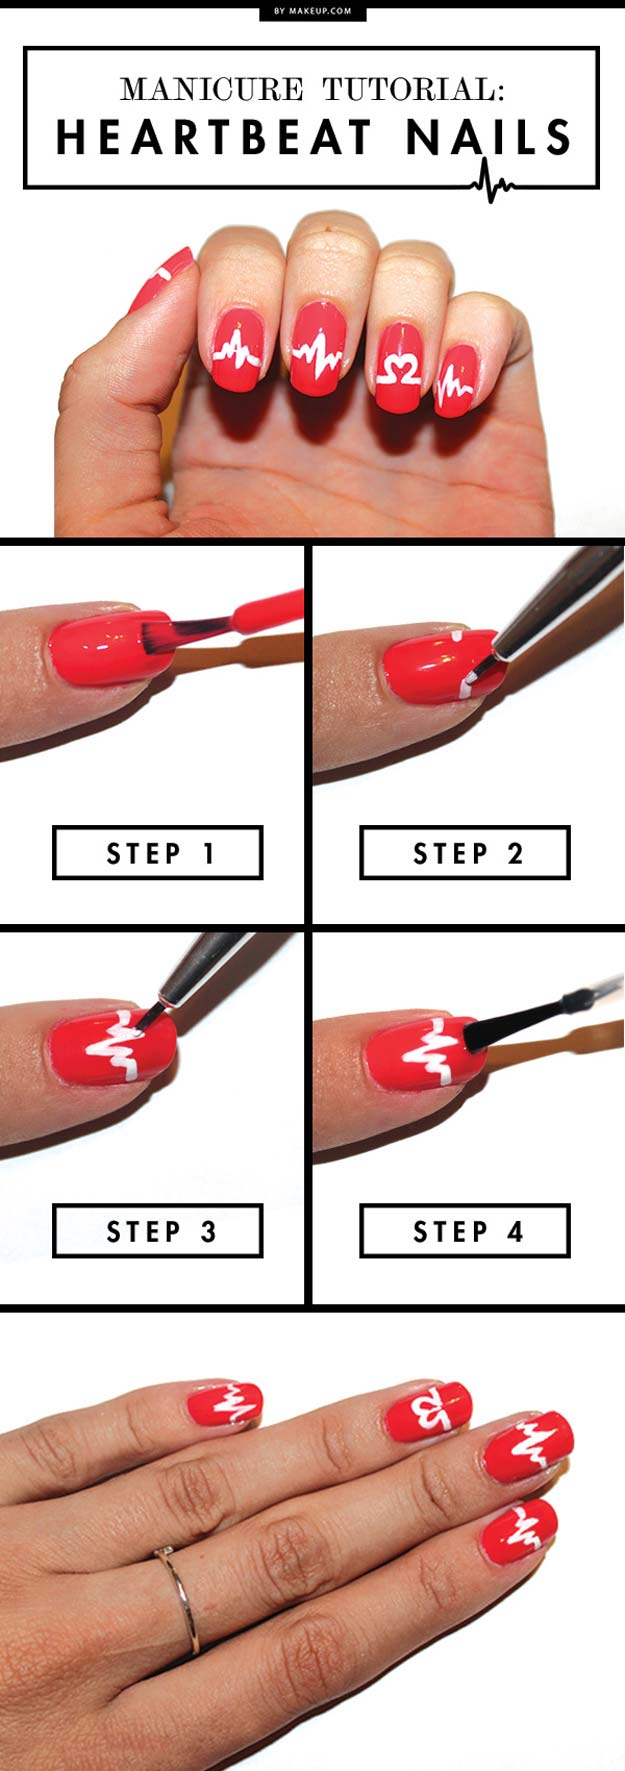 Valentine Nail Art Ideas - Heartbeat Nails - Cute and Cool Looks For Valentines Day Nails - Hearts, Gradients, Red, Black and Pink Designs - Easy Ideas for DIY Manicures with Step by Step Tutorials - Fun Ideas for Teens, Teenagers and Women